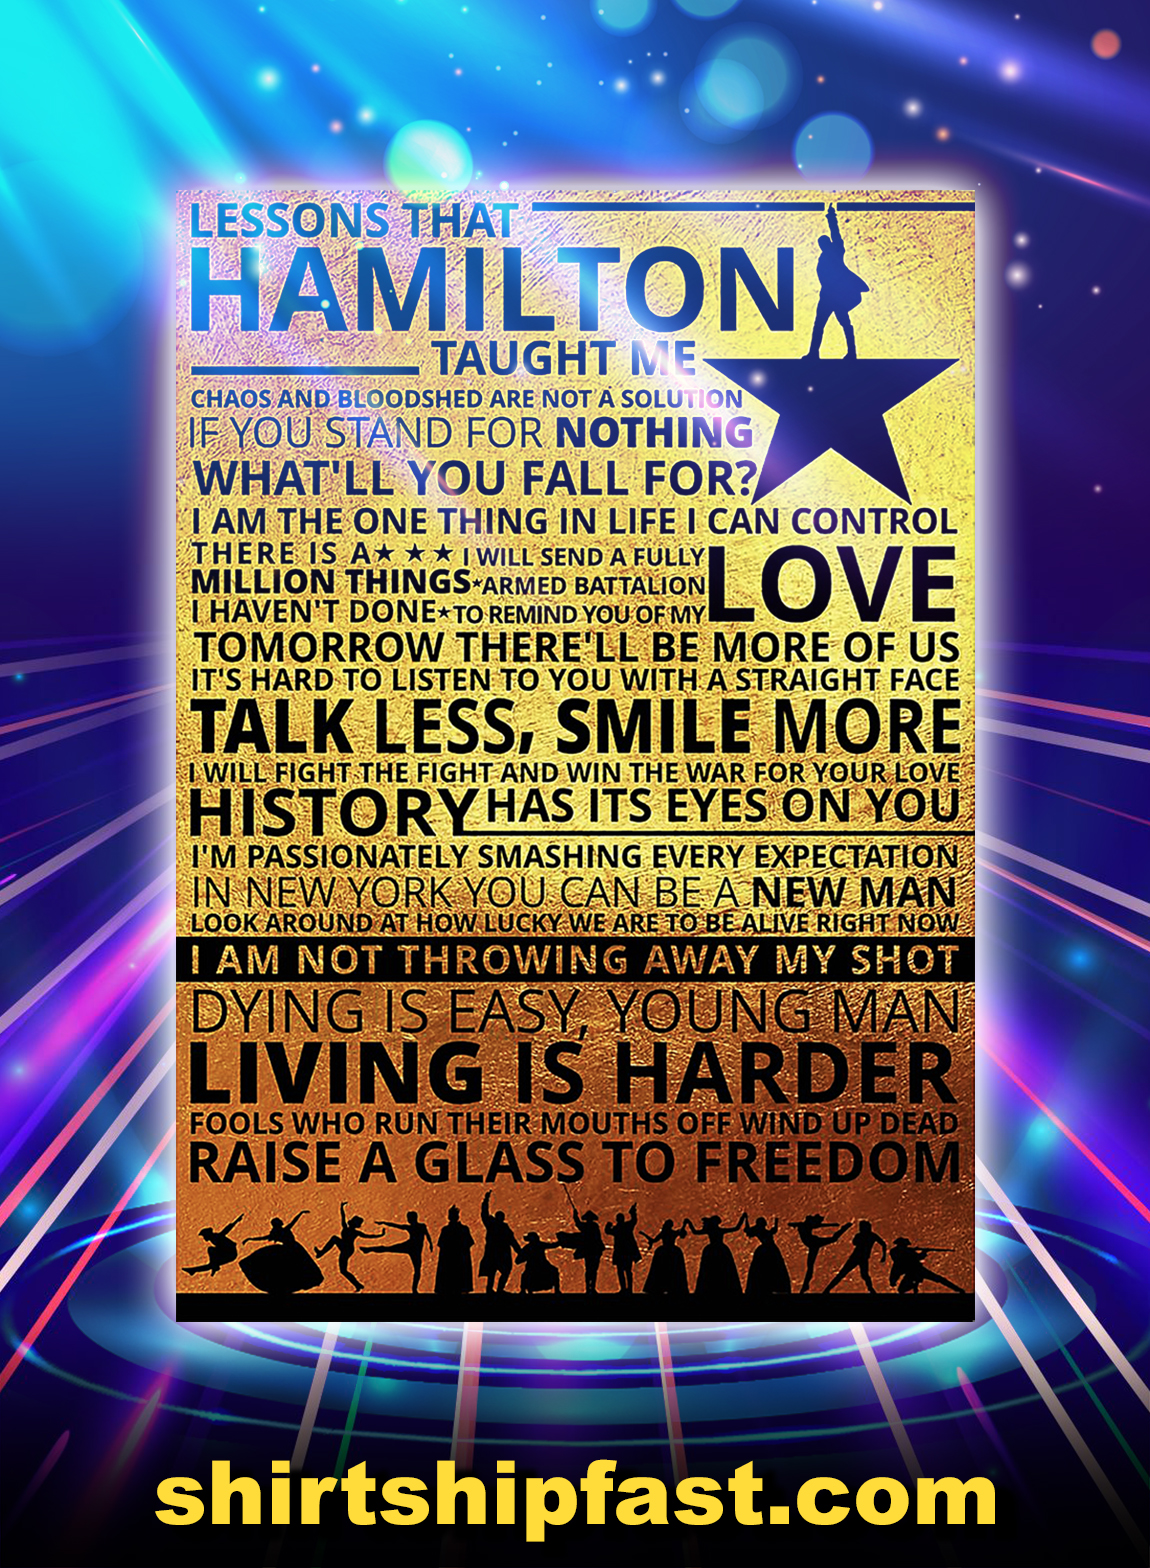 Poster Lessons hamilton taught me - A3